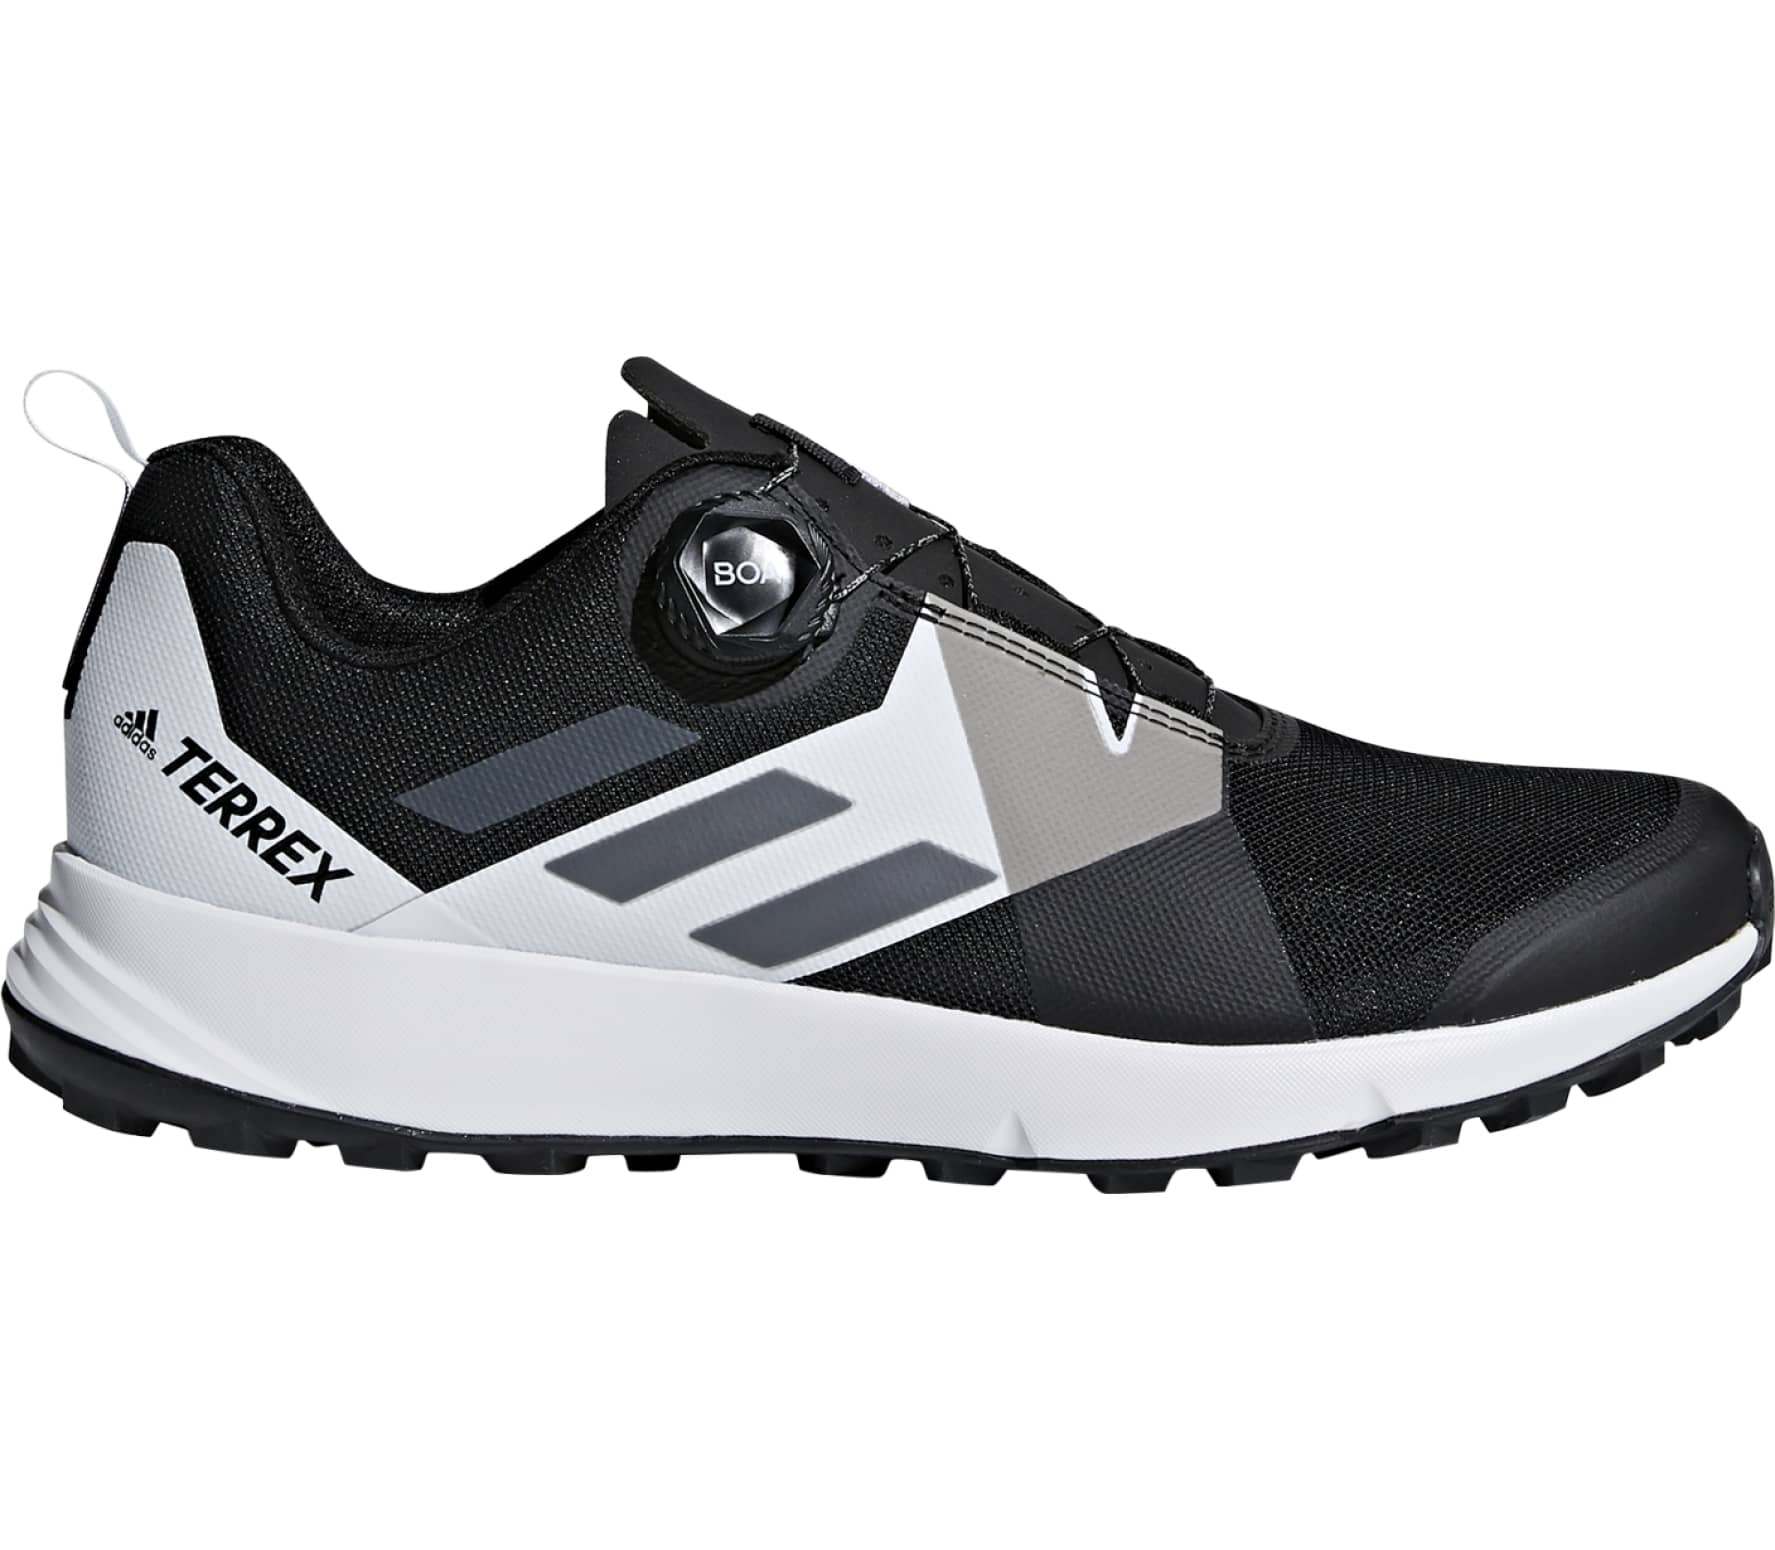 Adidas - Terrex Two Boa men s mountain running shoes (grey white ... dc8319327